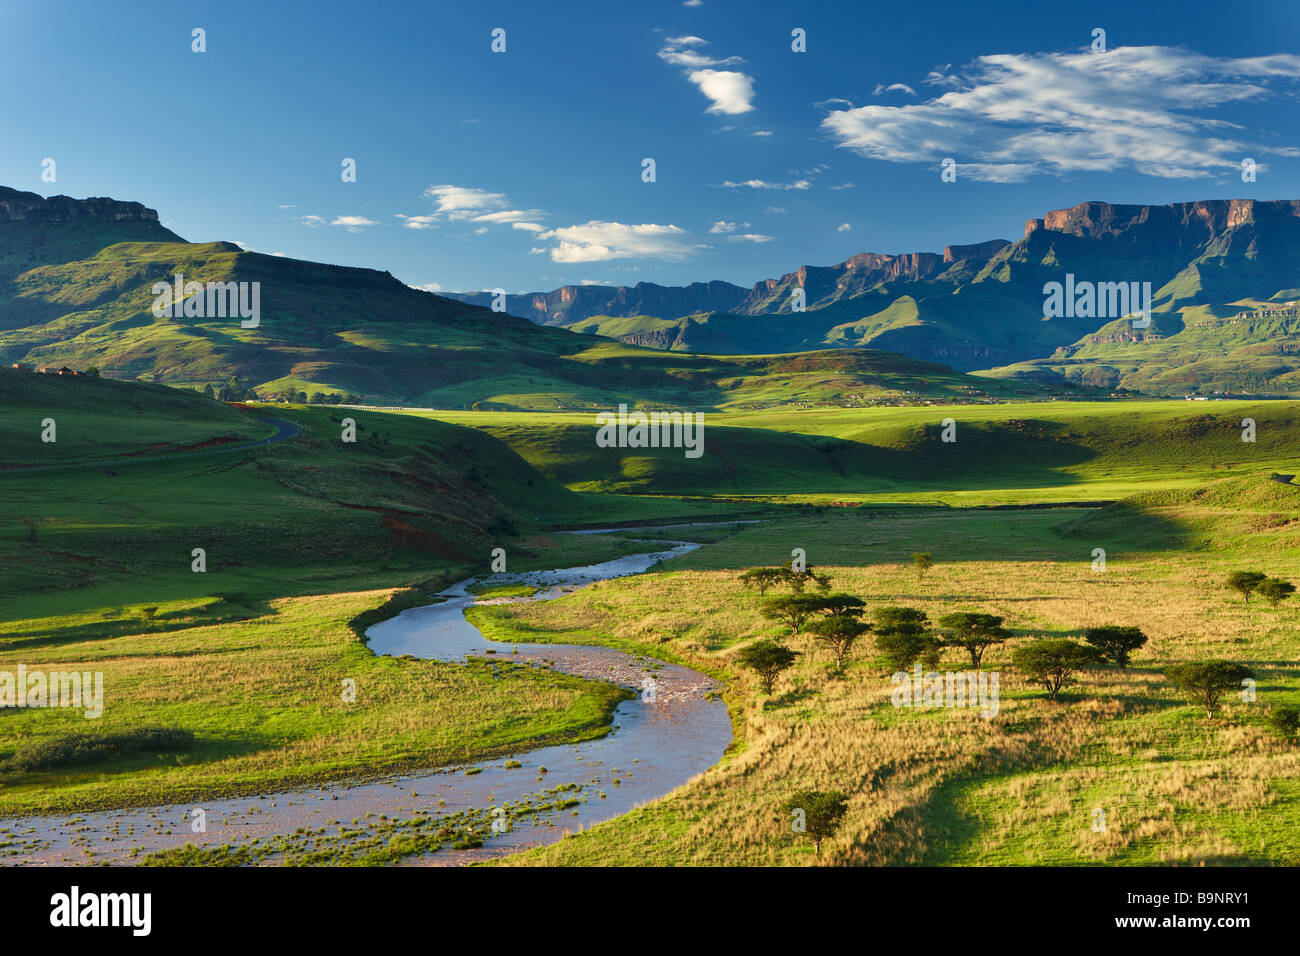 the Tugela Valley with the Drakensberg Mountains beyond, KwaZulu Natal, South Africa Stock Photo